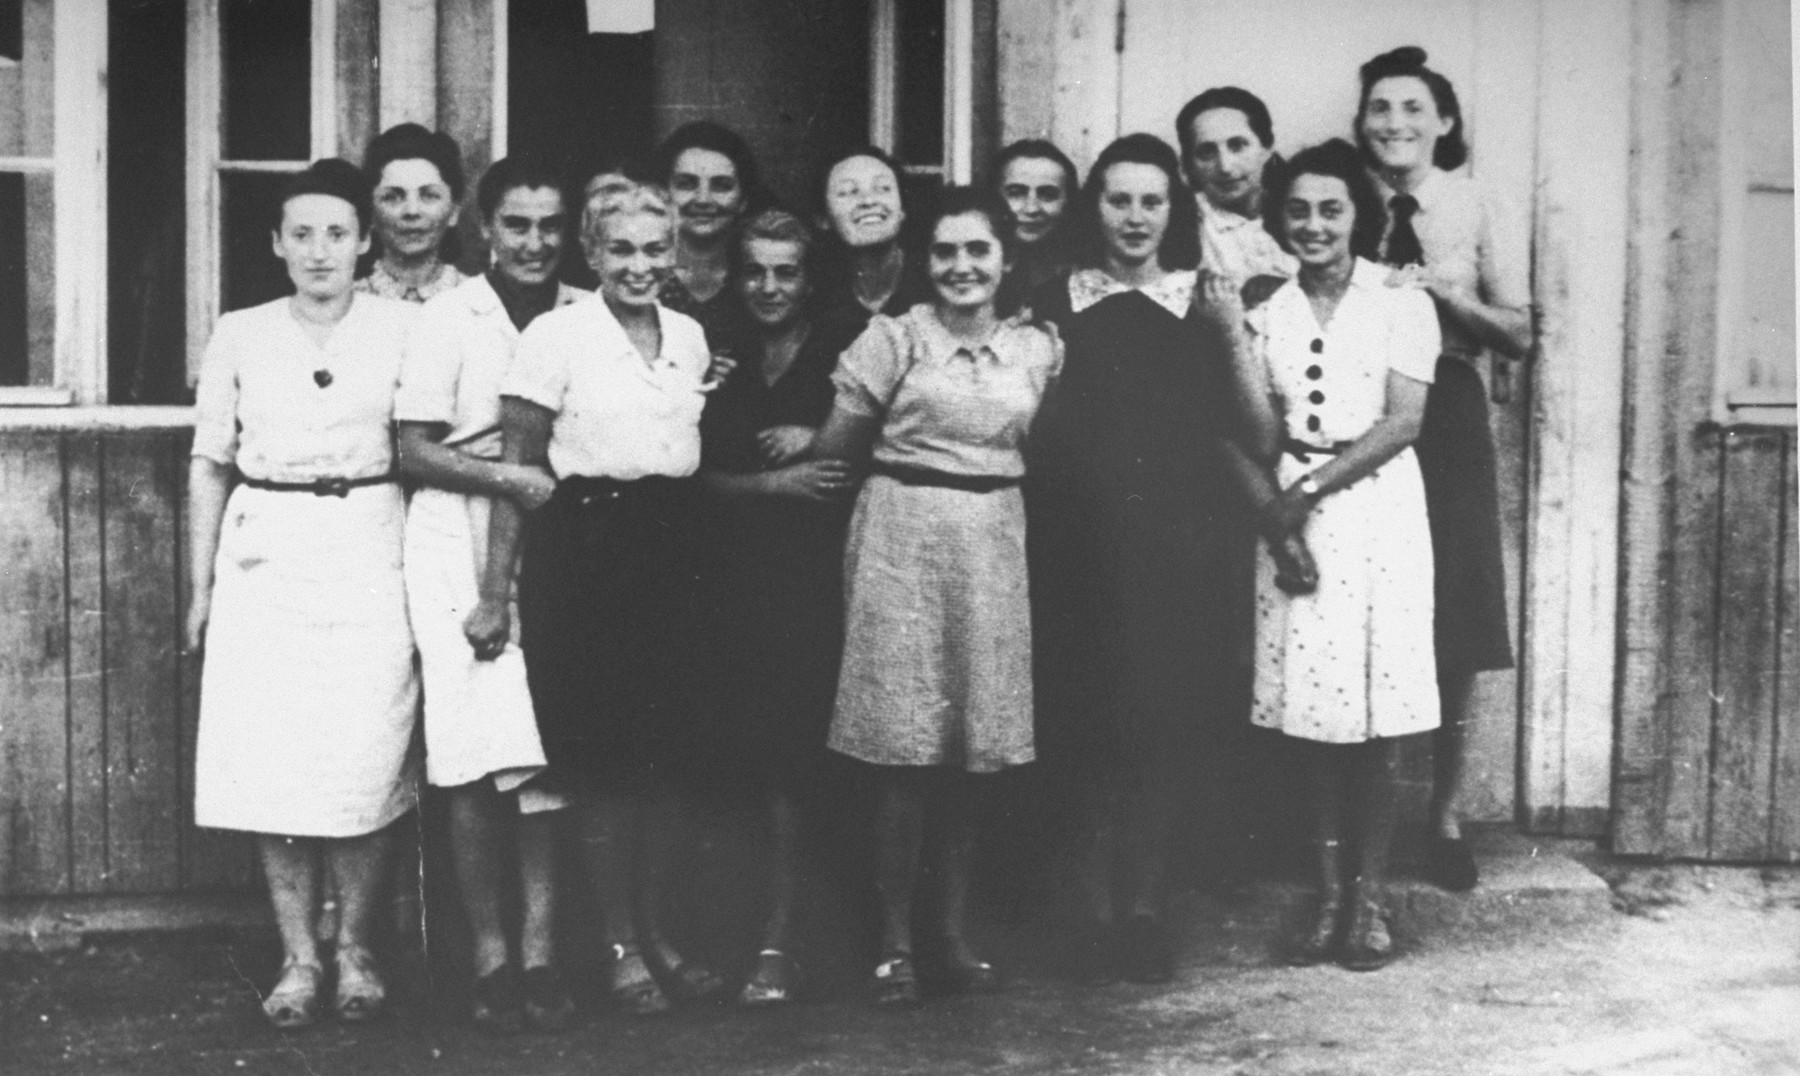 The secretarial staff of Oskar Schindler's enamelware factory in Krakow-Zablocie.  Among those pictured is Hermina Gelb Gross (middle, in the black dress) from Tarnow.